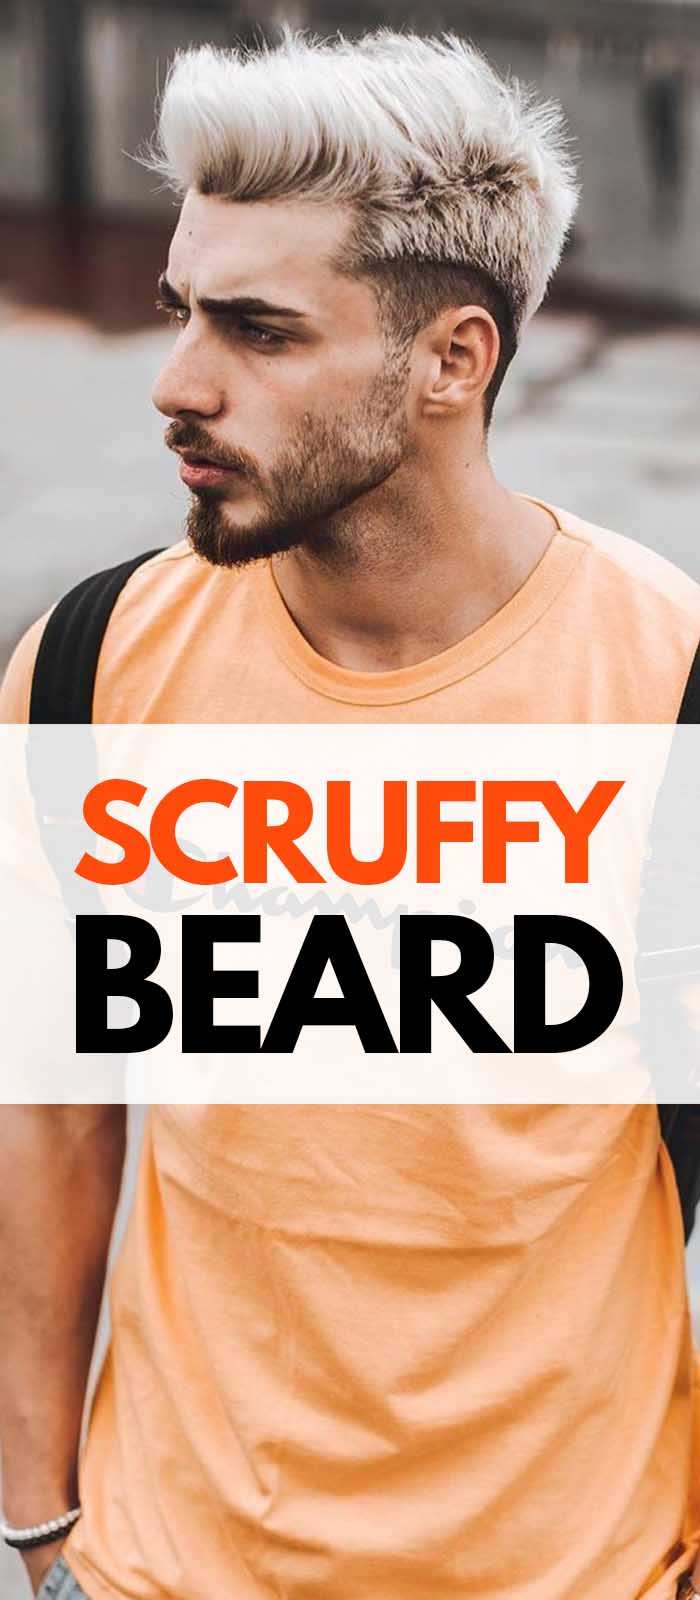 Scruffy Beard.